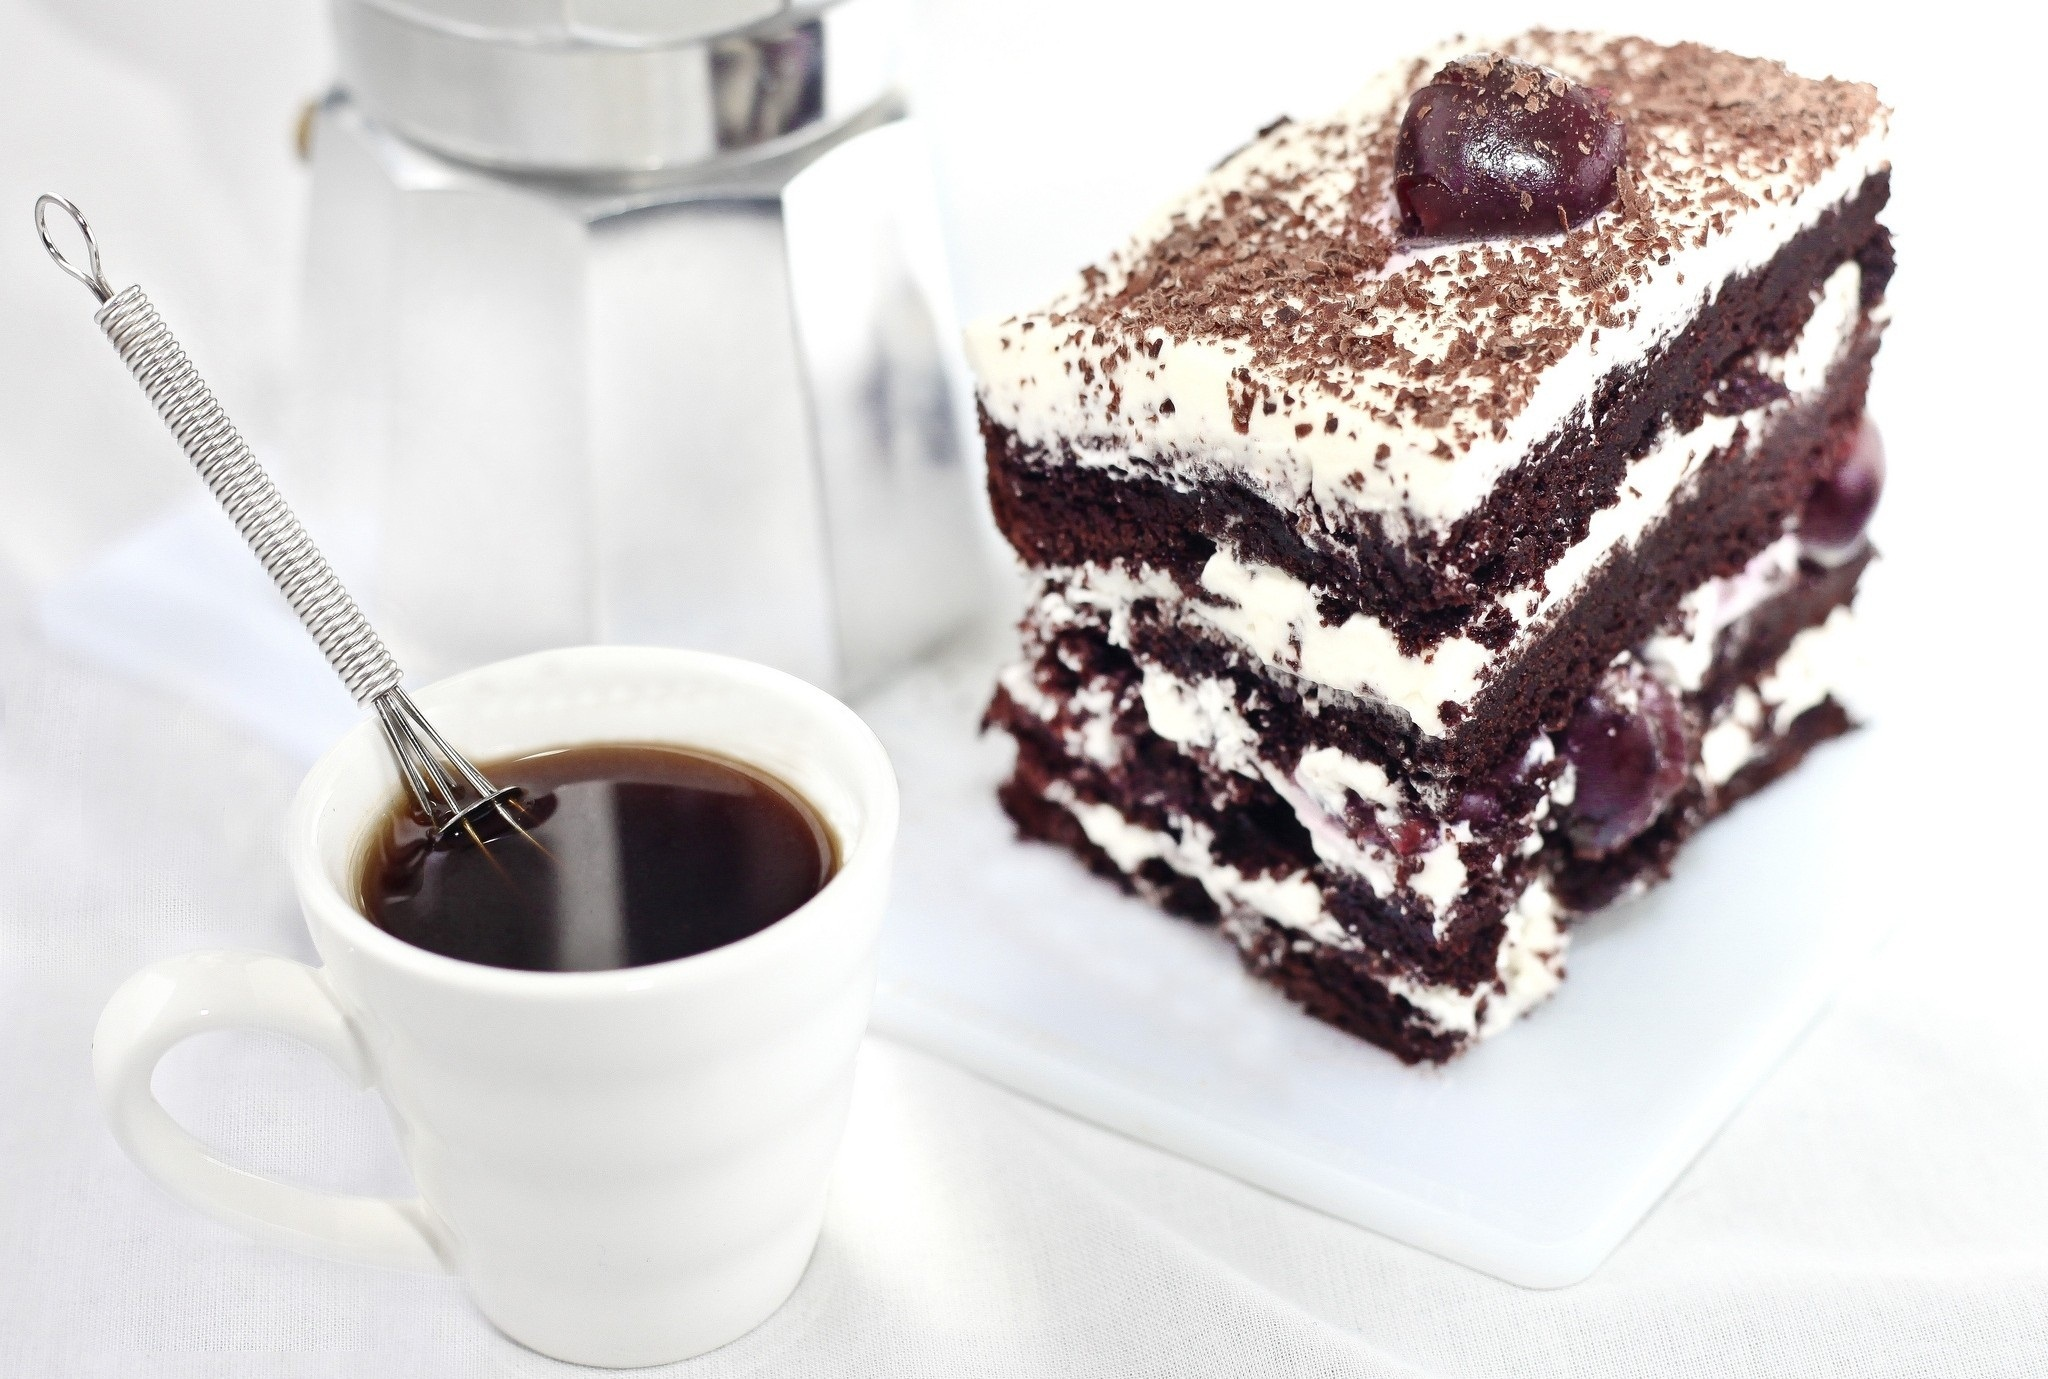 Permalink to Chocolate Cake With Cup Of Coffee In It